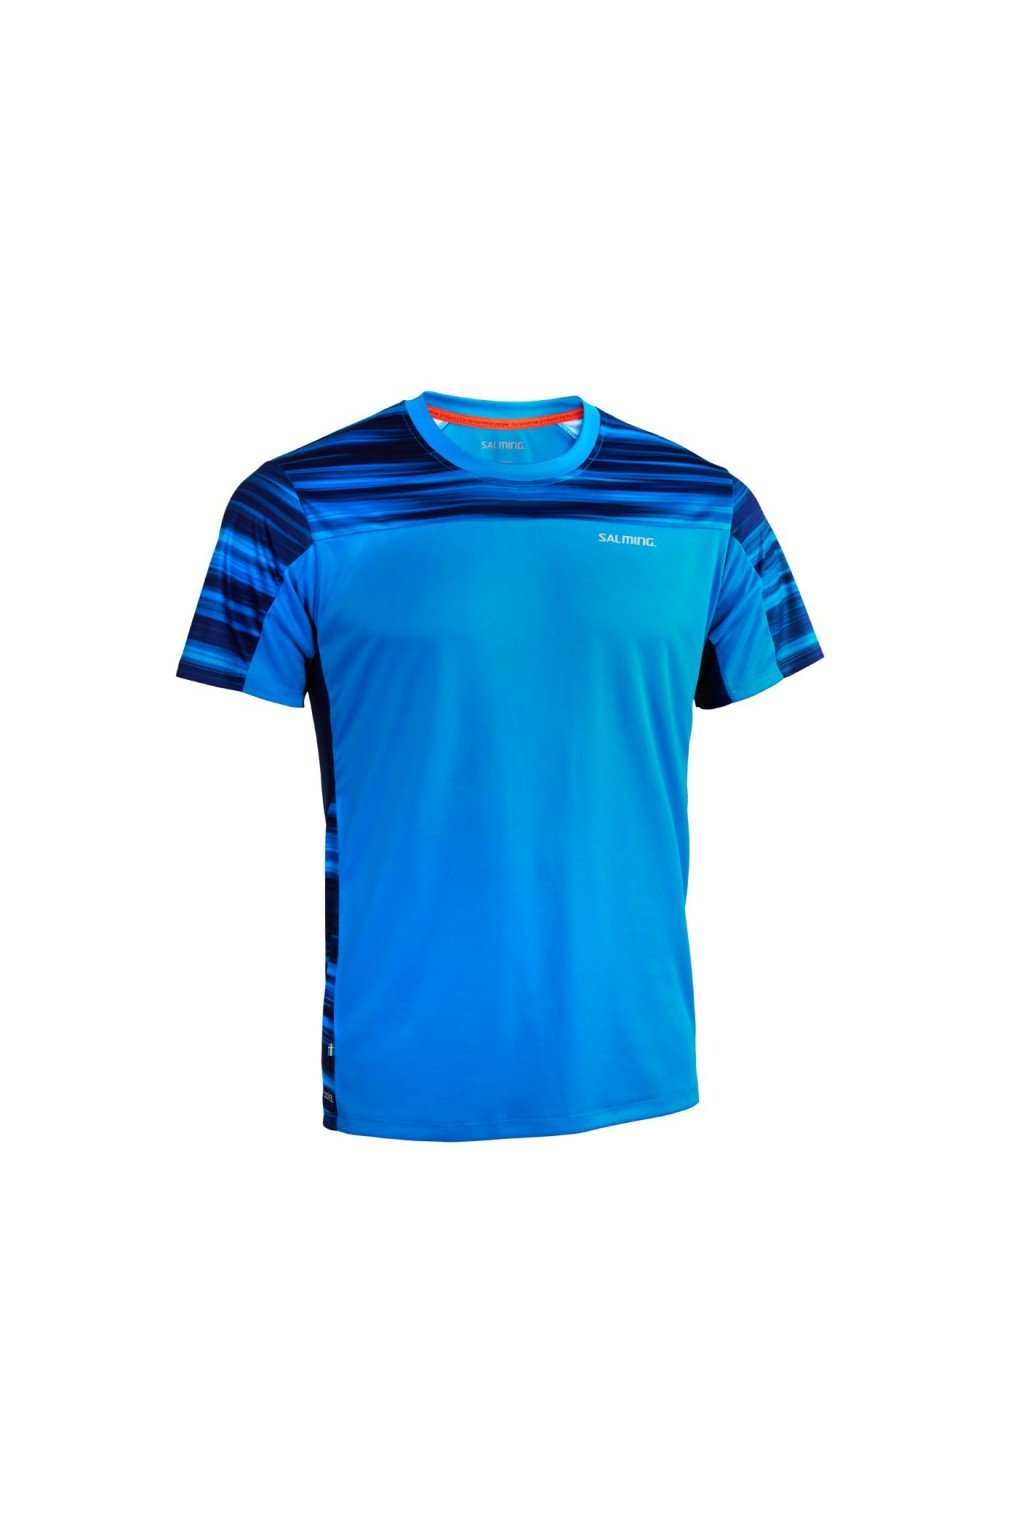 salming motion tee men blue xxl